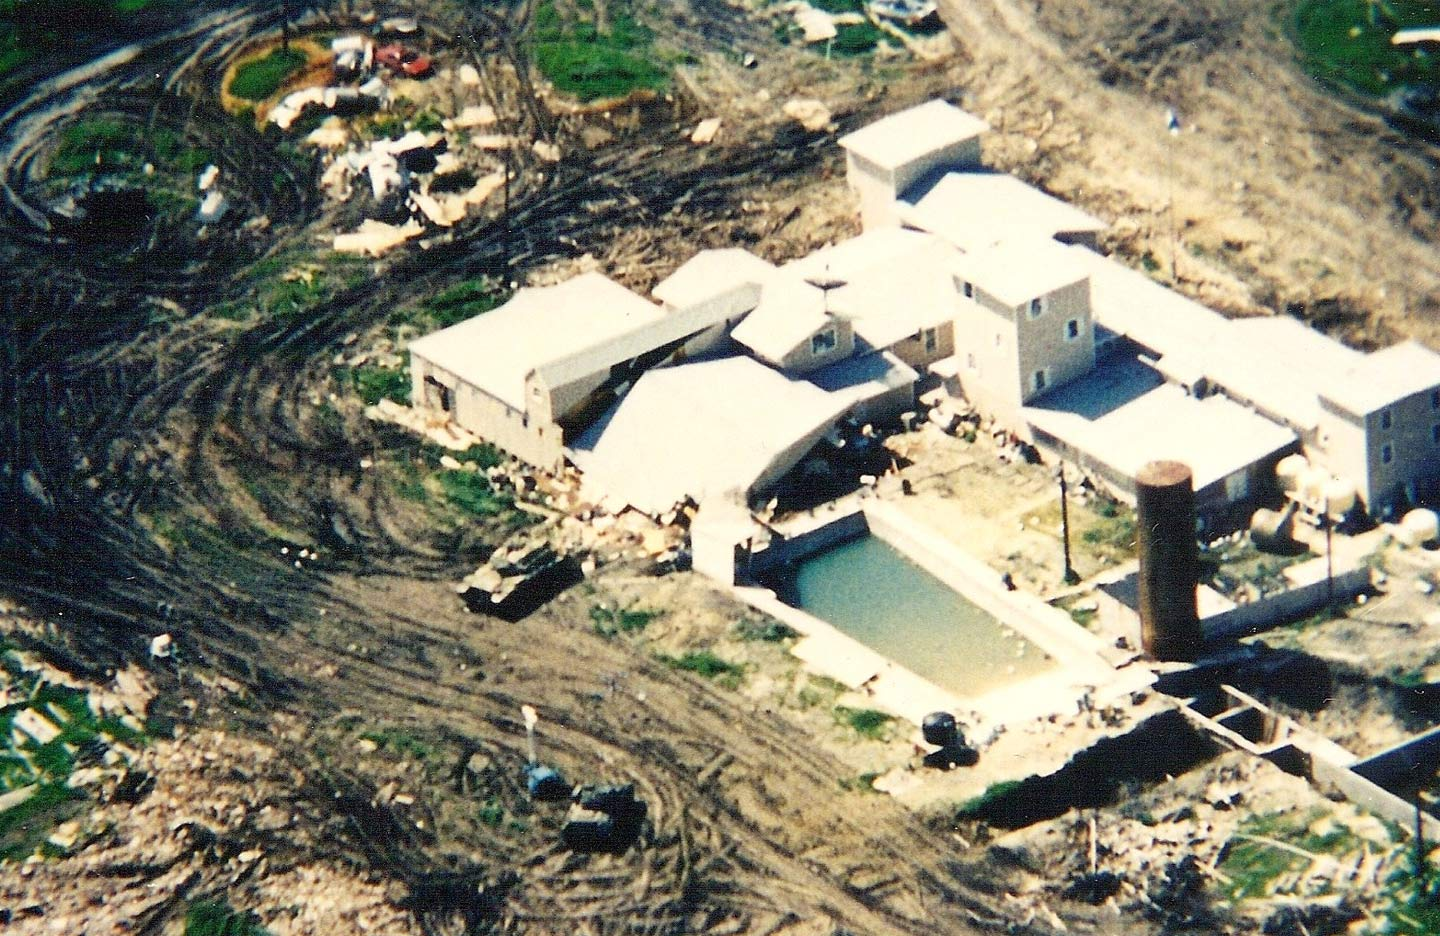 thumbnail image for The Waco Tragedy: 25 Years Later - How to Recognize False Teaching